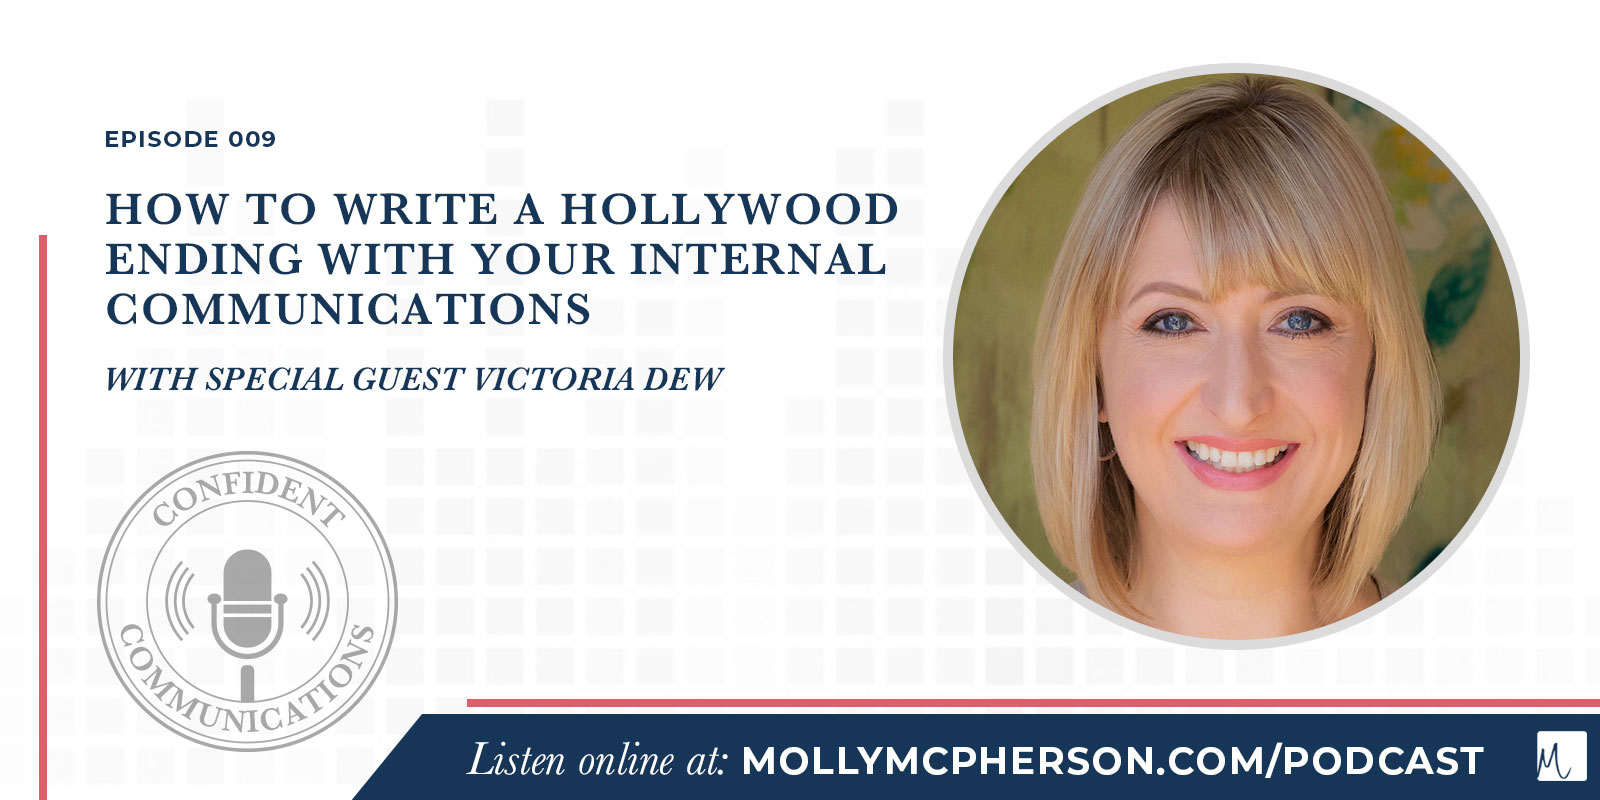 How to Write a Hollywood Ending With Your Internal Communications